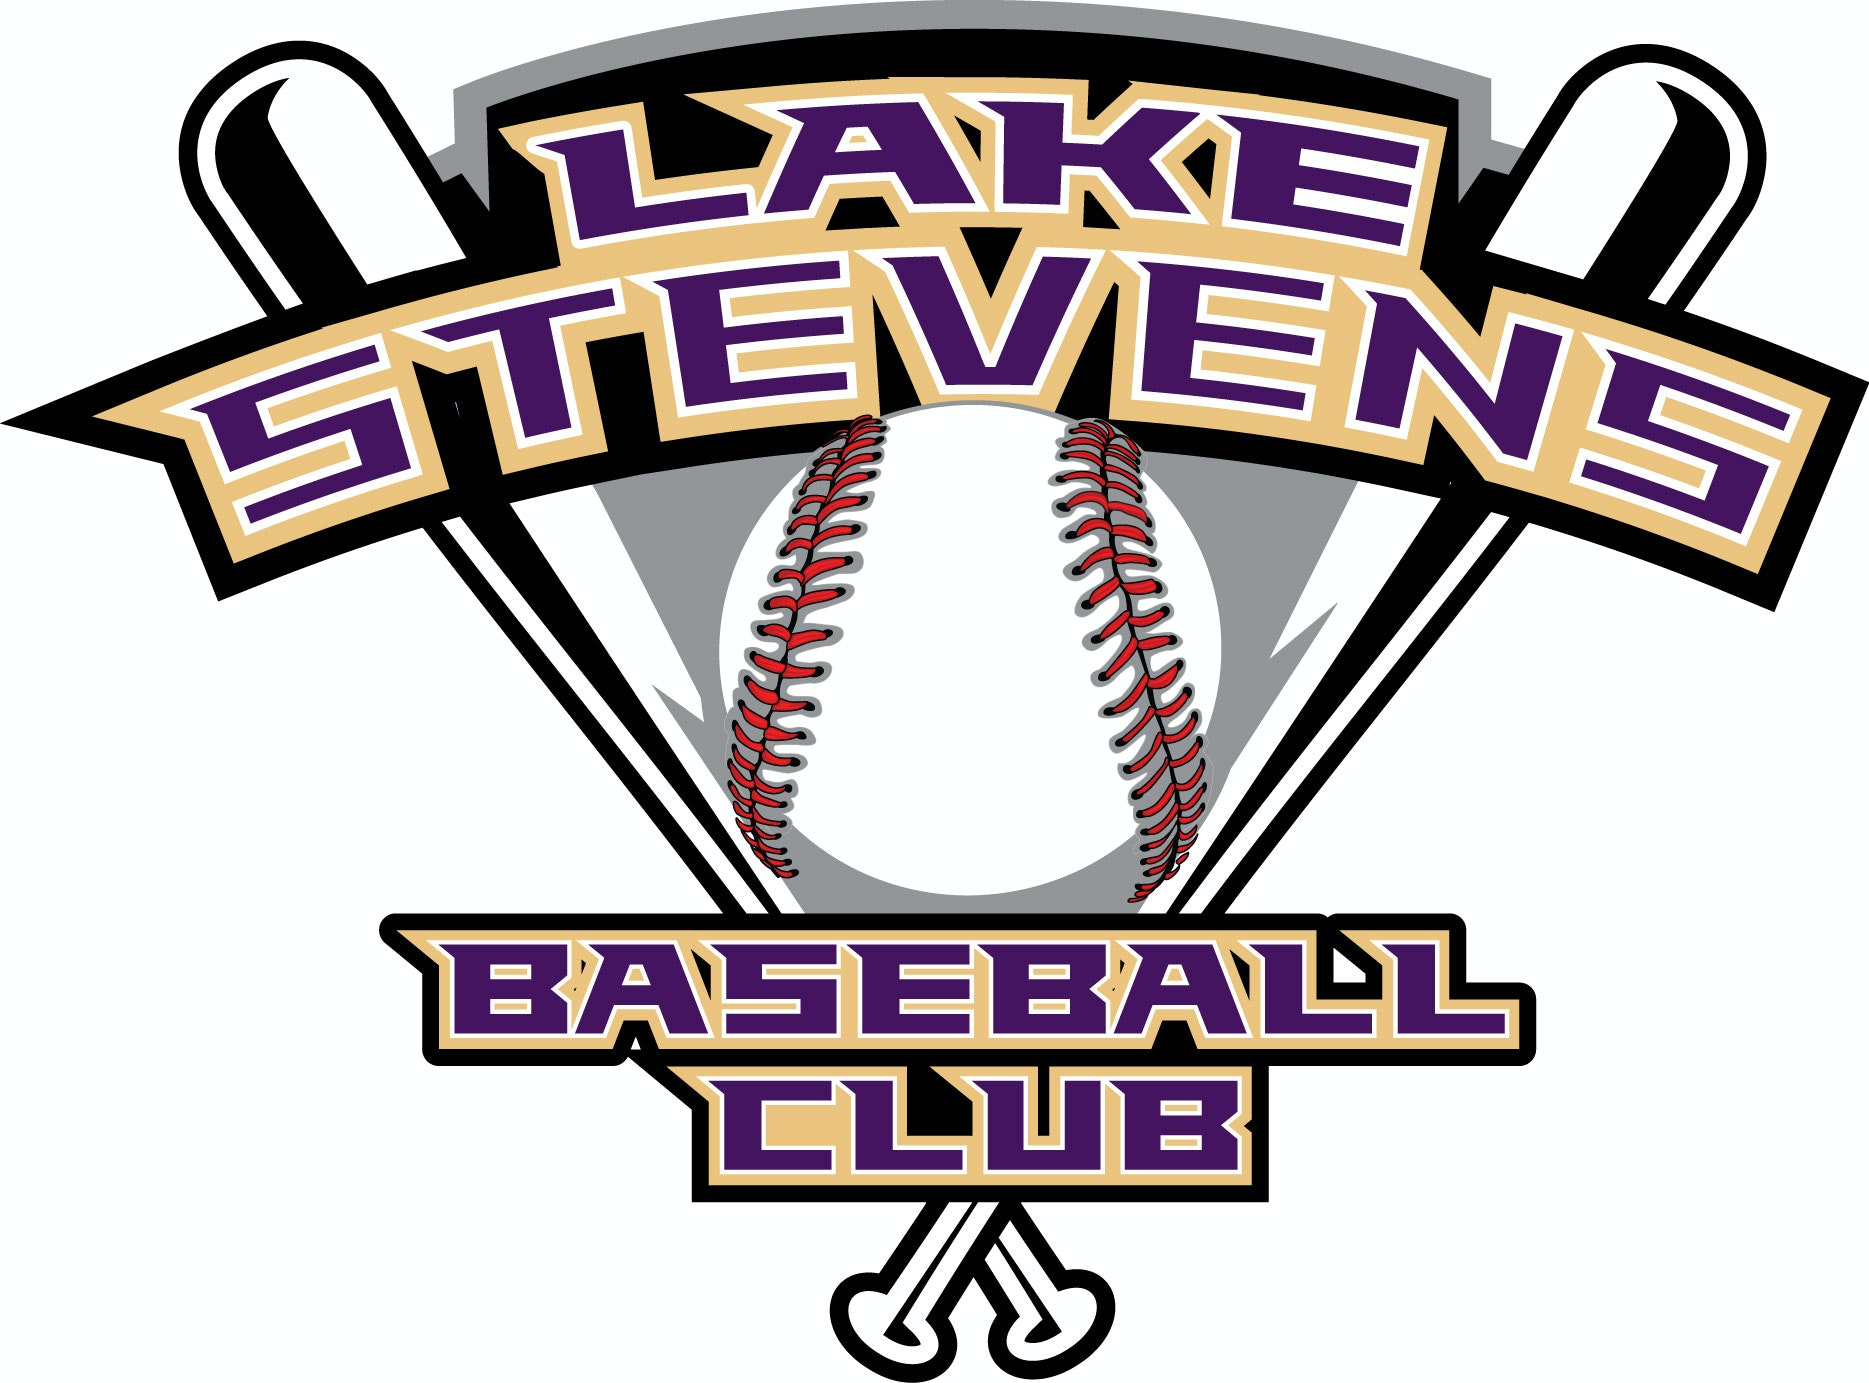 Lake Stevens Baseball Club